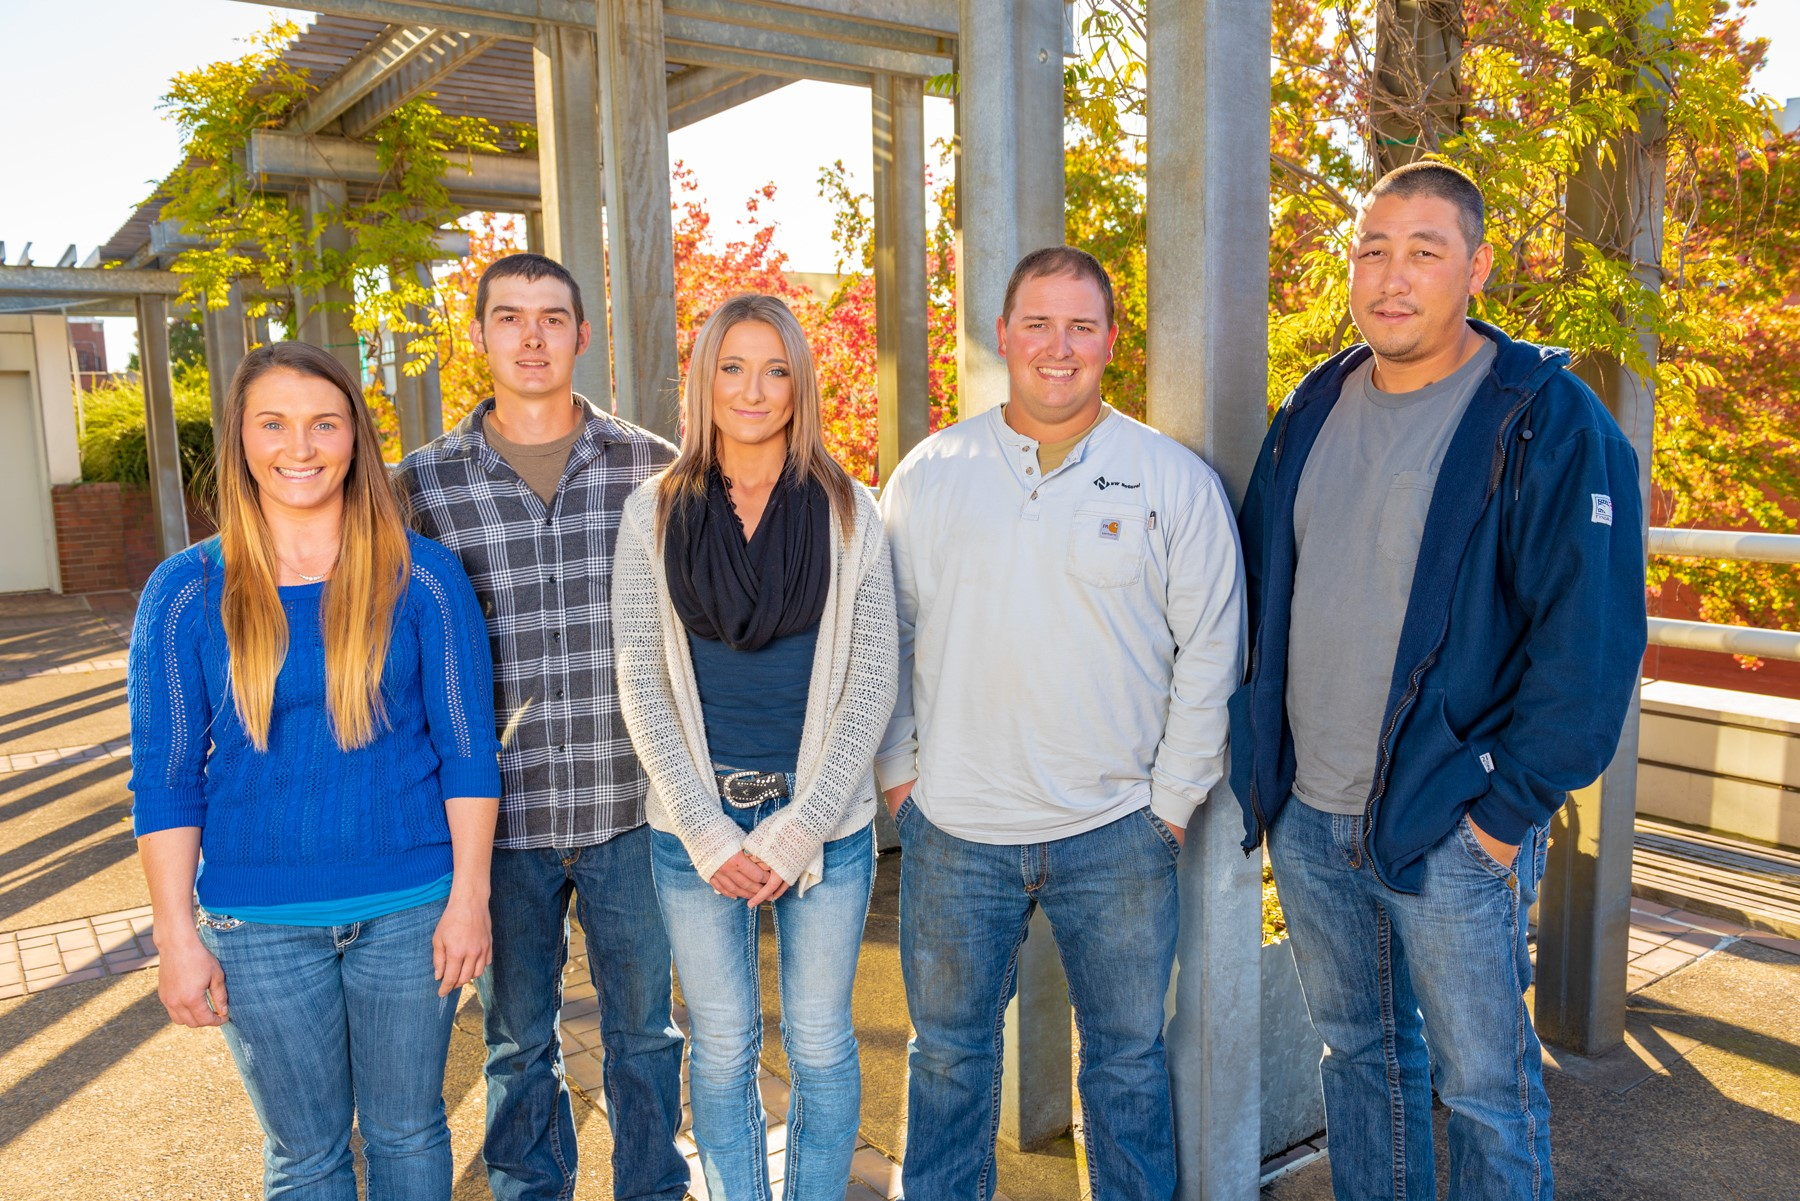 NW Natural's new Construction Internship Program creates opportunities for qualified candidates. The first cohort included several interns who transferred into full-time positions with the company in 2018.